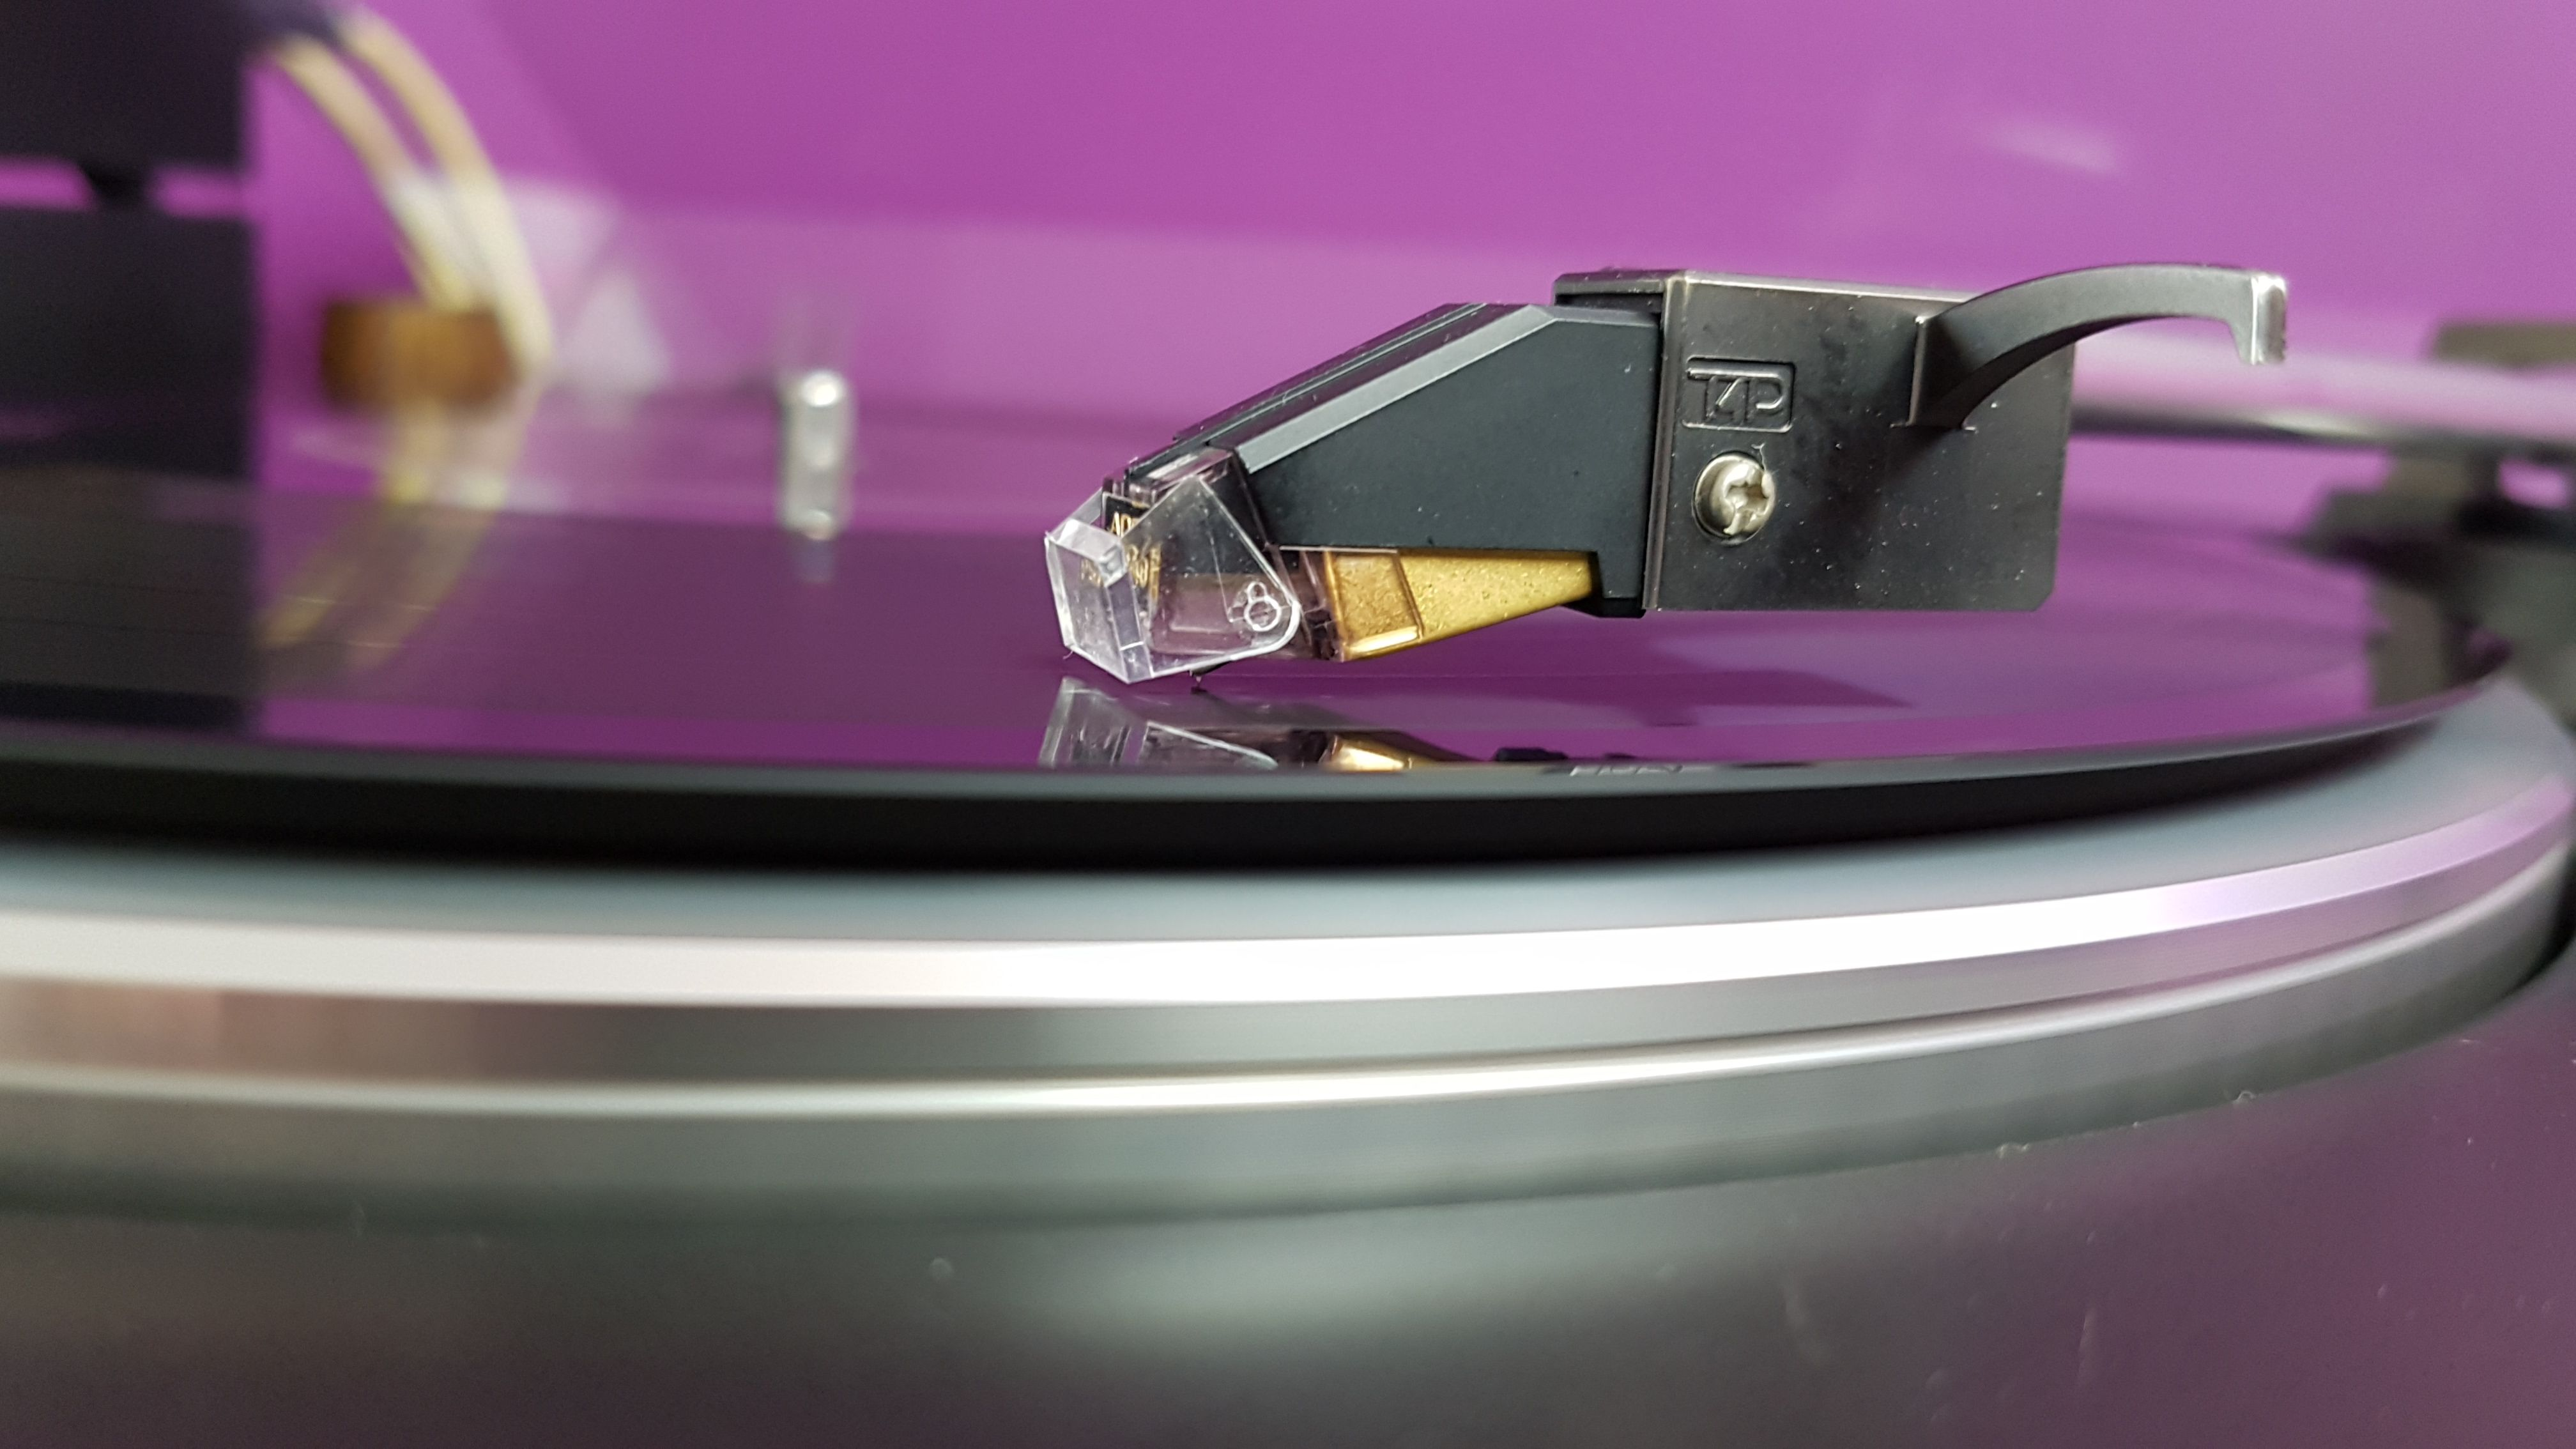 Turntable Technics Sl Dd33 Adc Psx40 For Sale Http Www  # Kapaza Tv Meubles